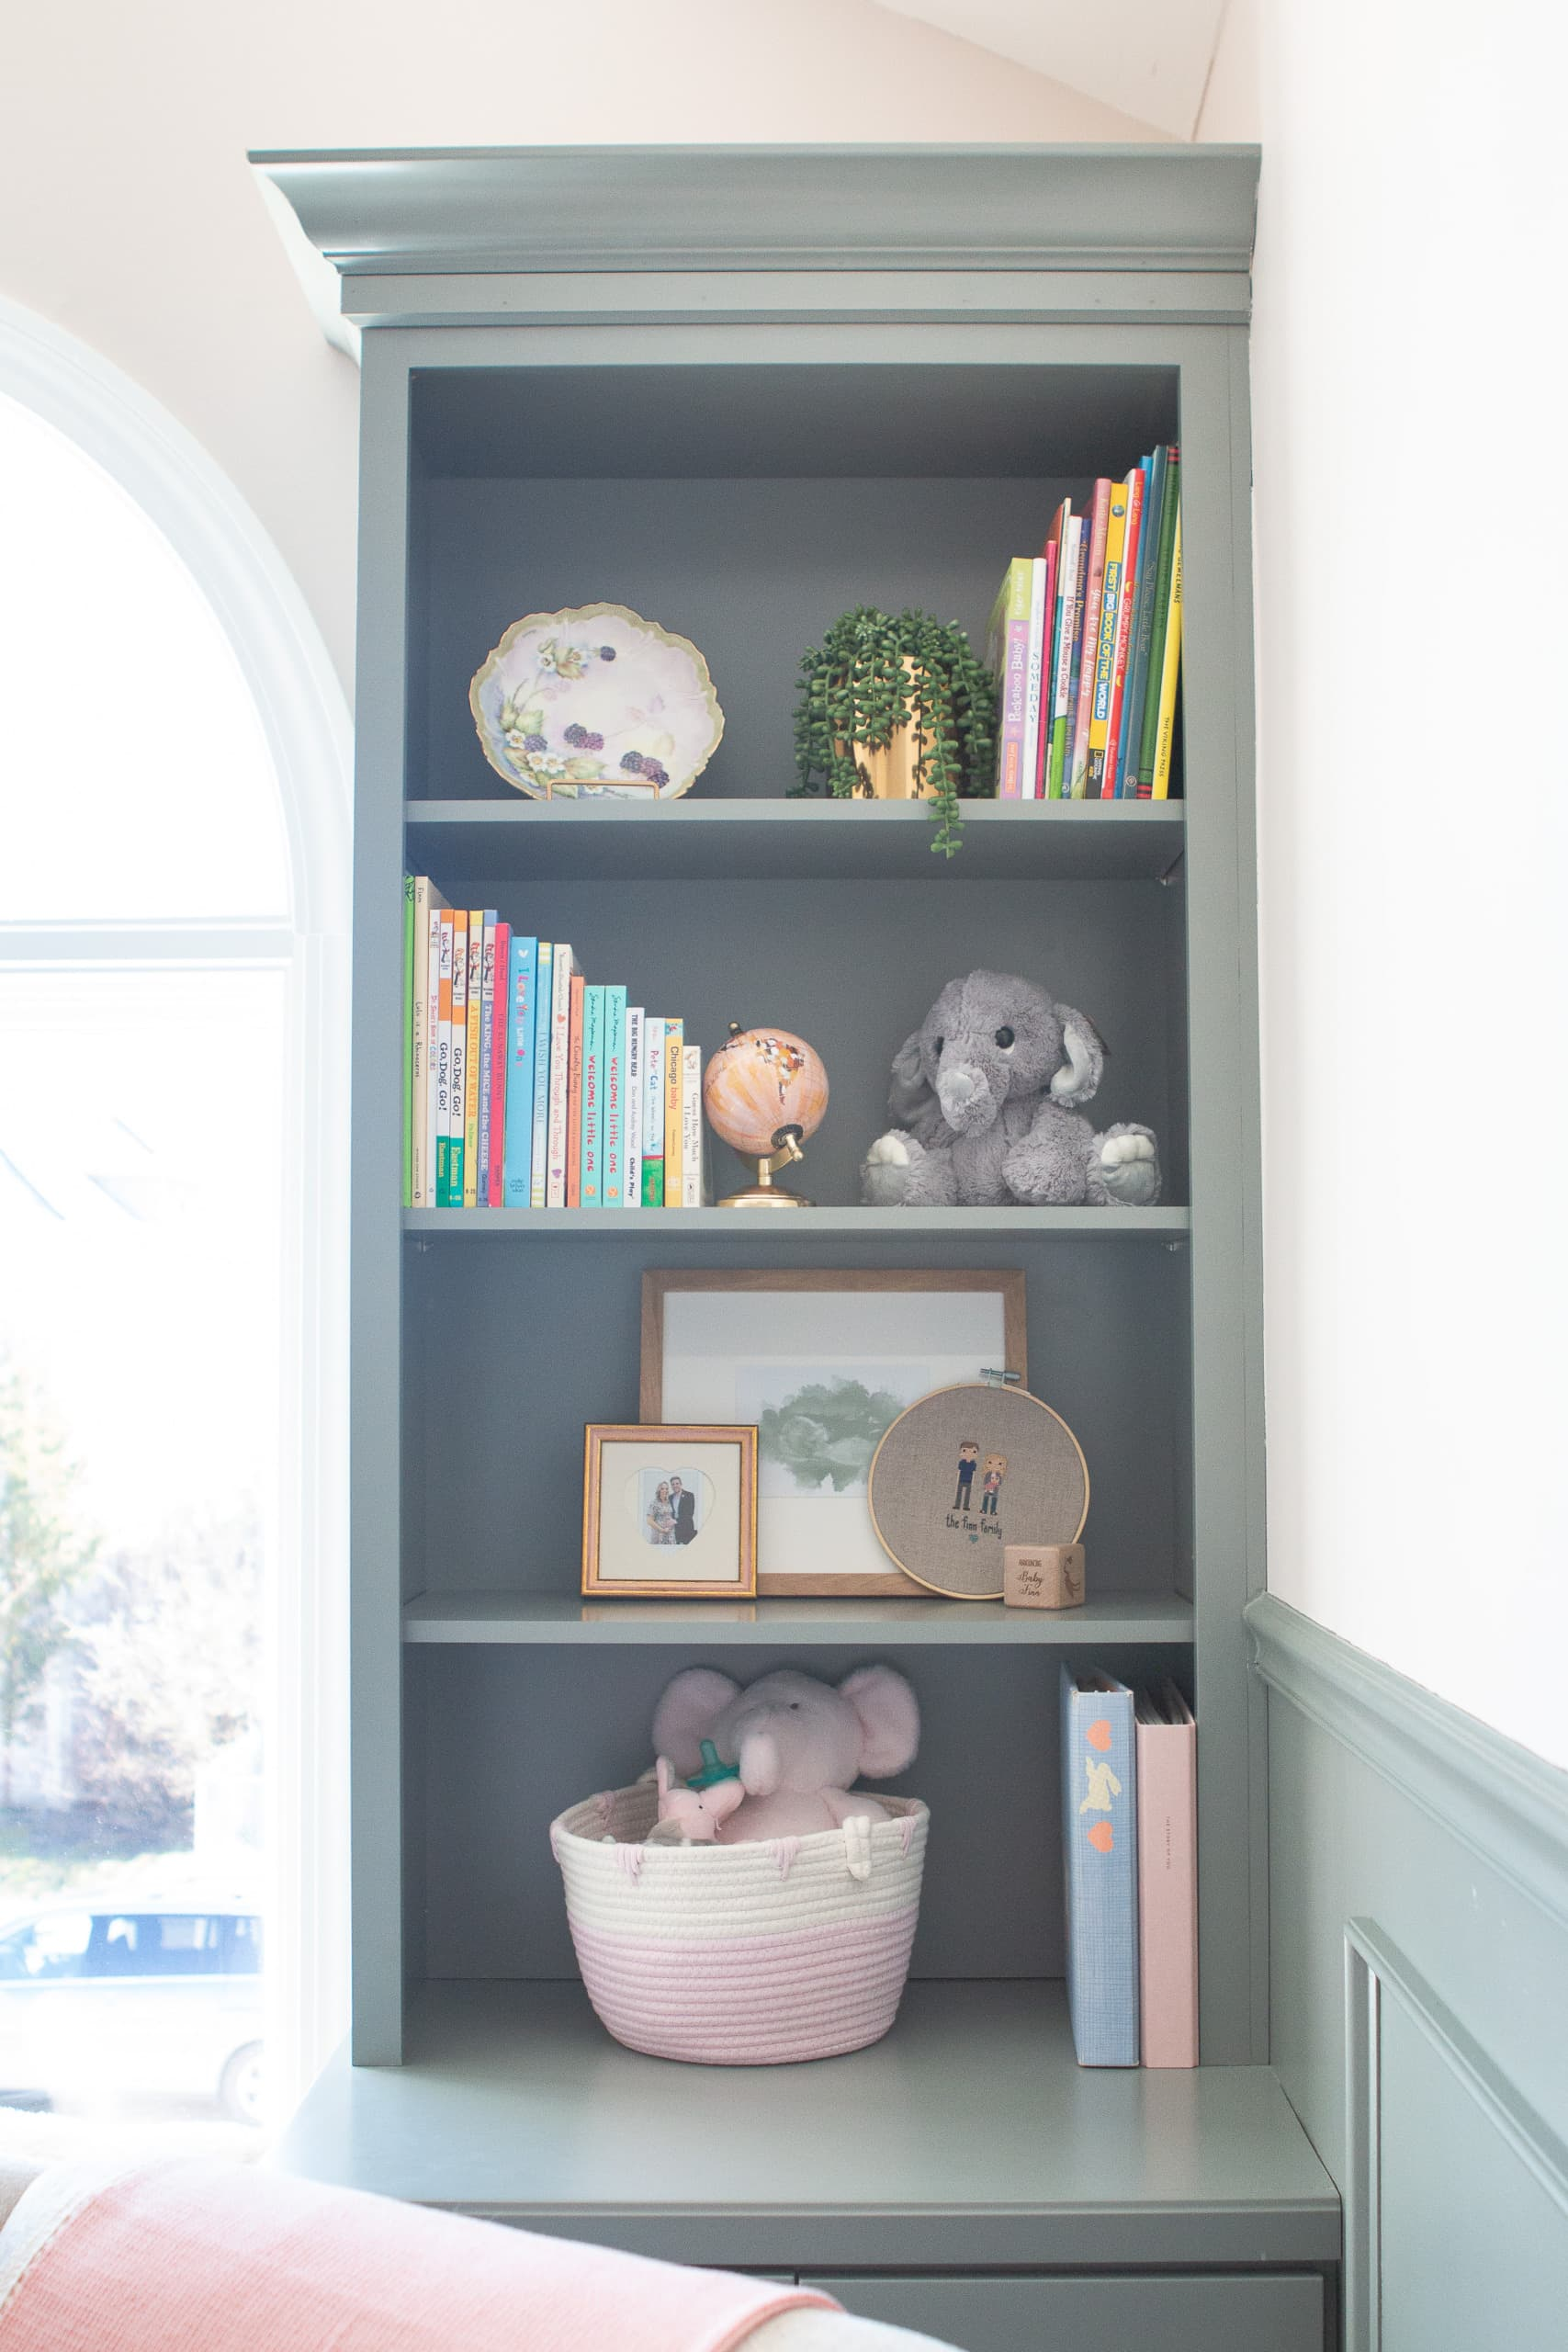 How to style bookshelves in a nursery